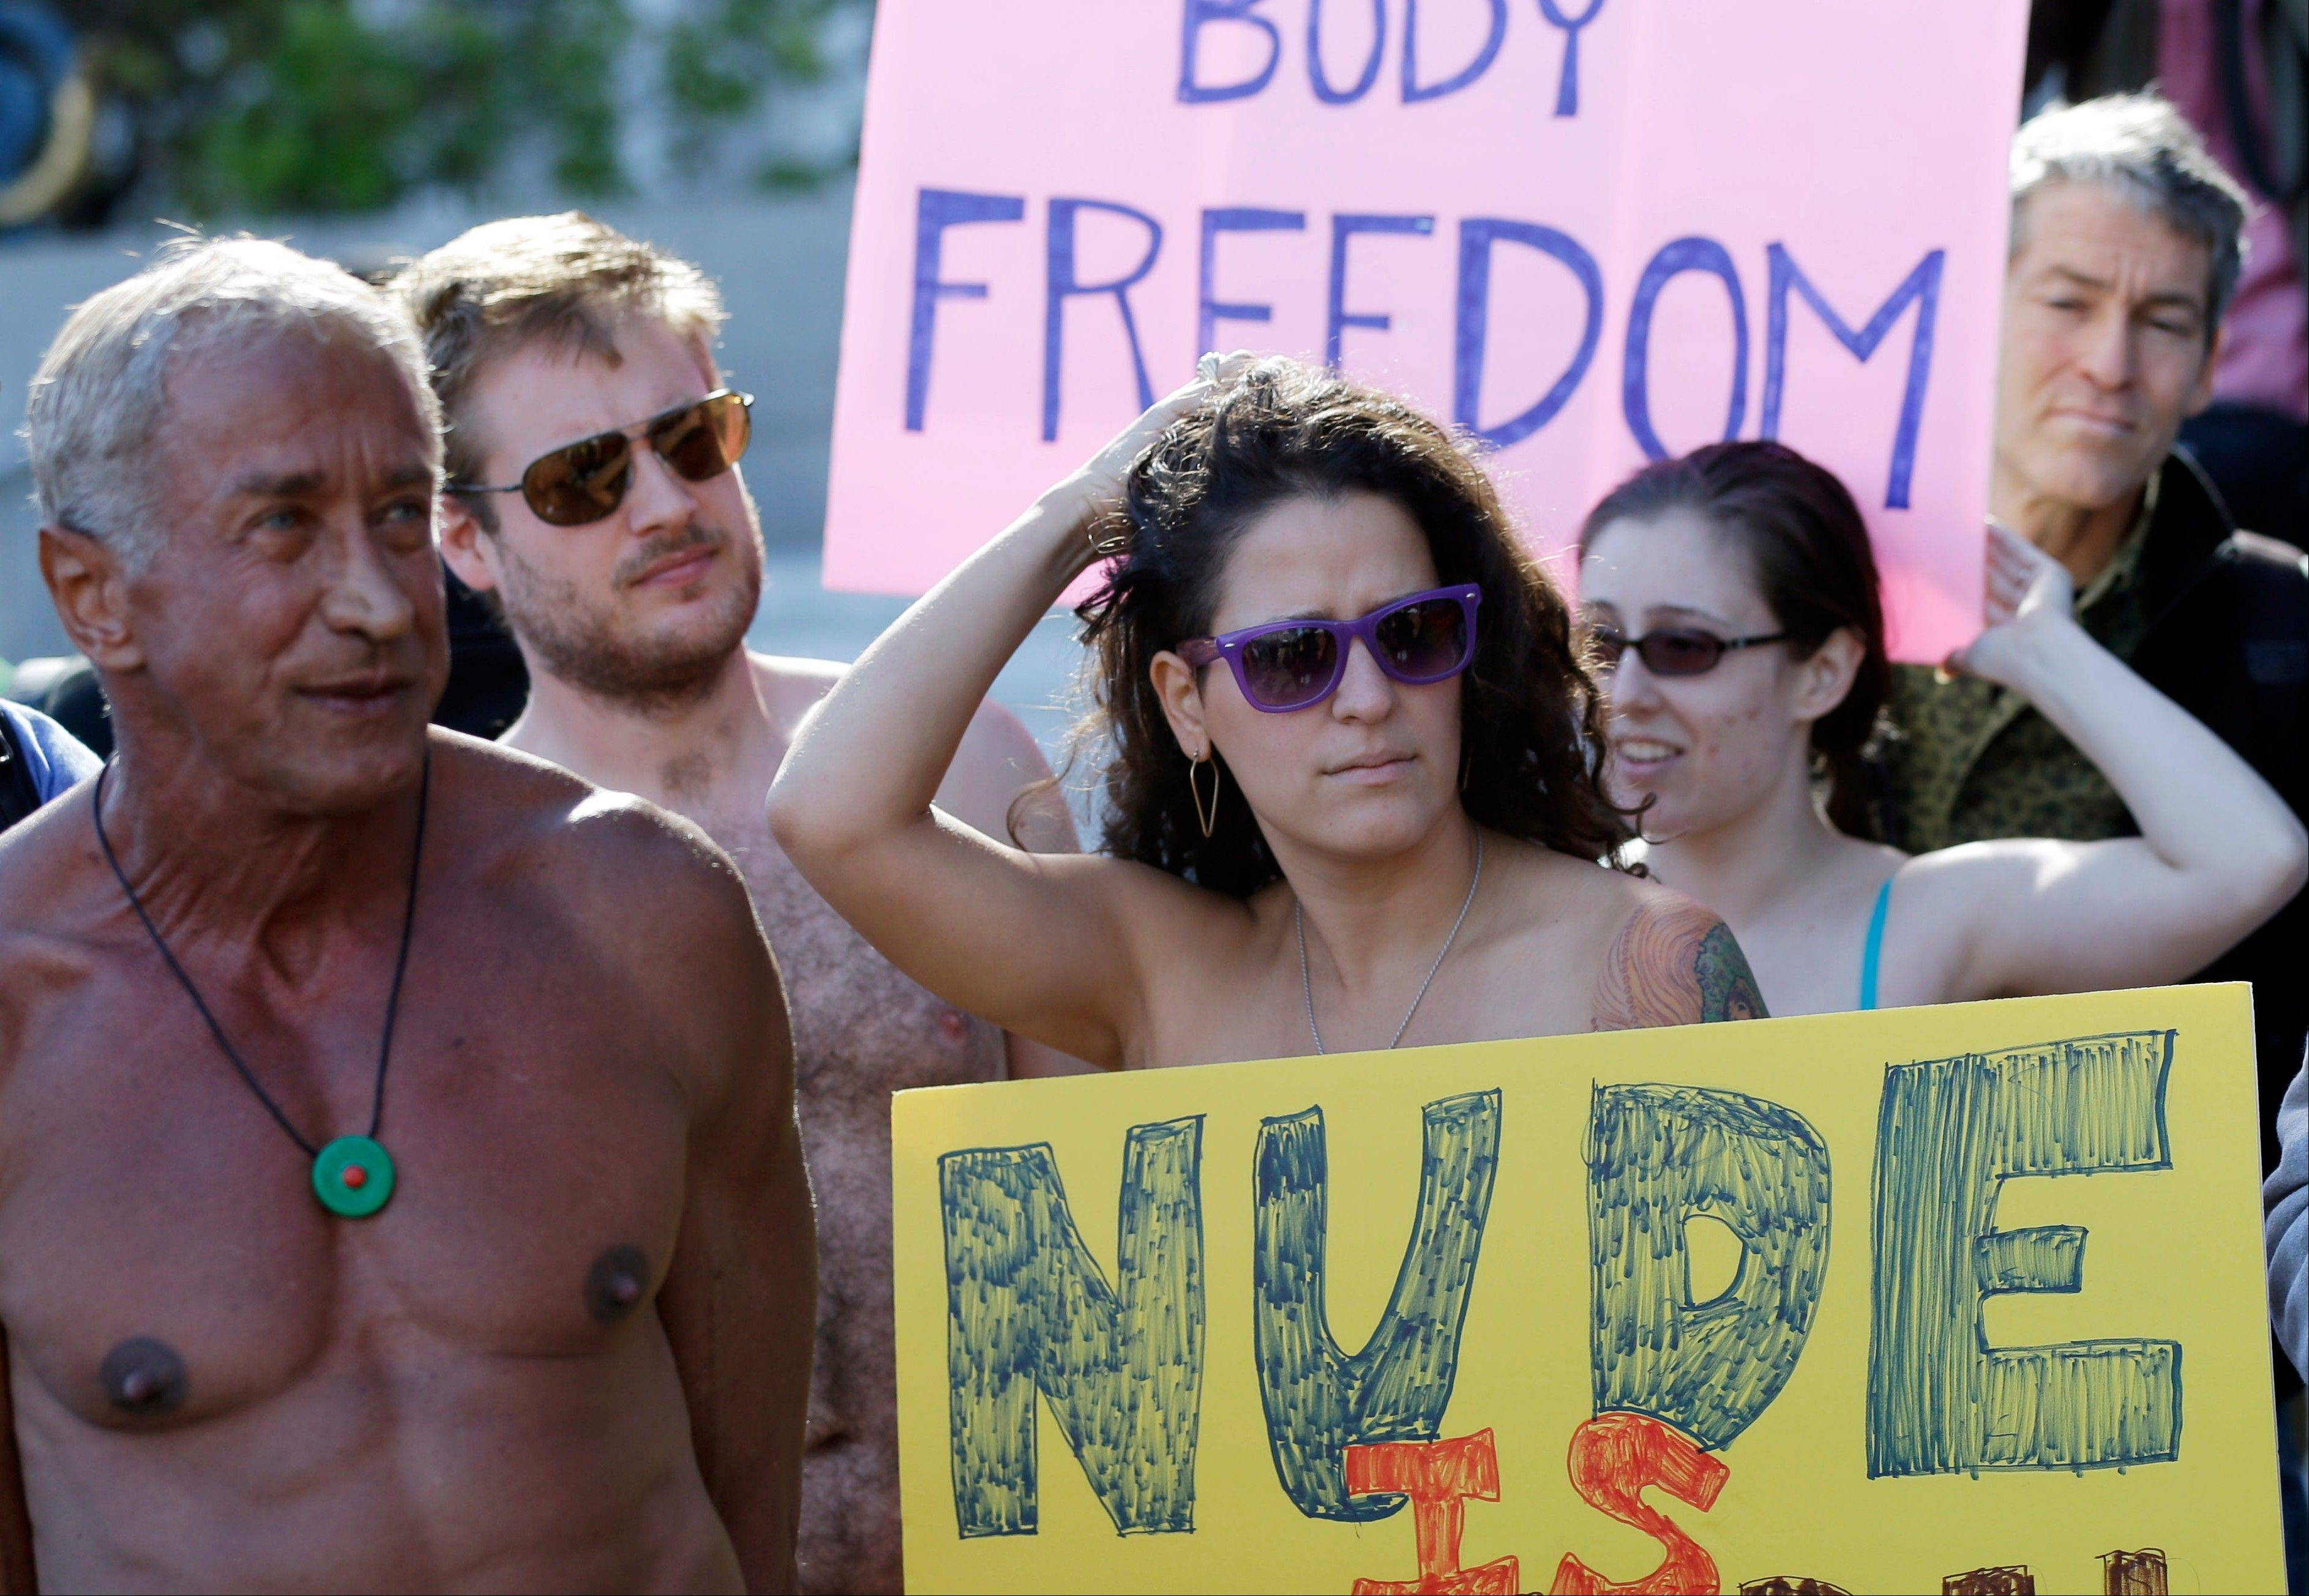 Demonstrators gather outside of City Hall in San Francisco for a protest against a proposed city-wide nudity ban, Wednesday.